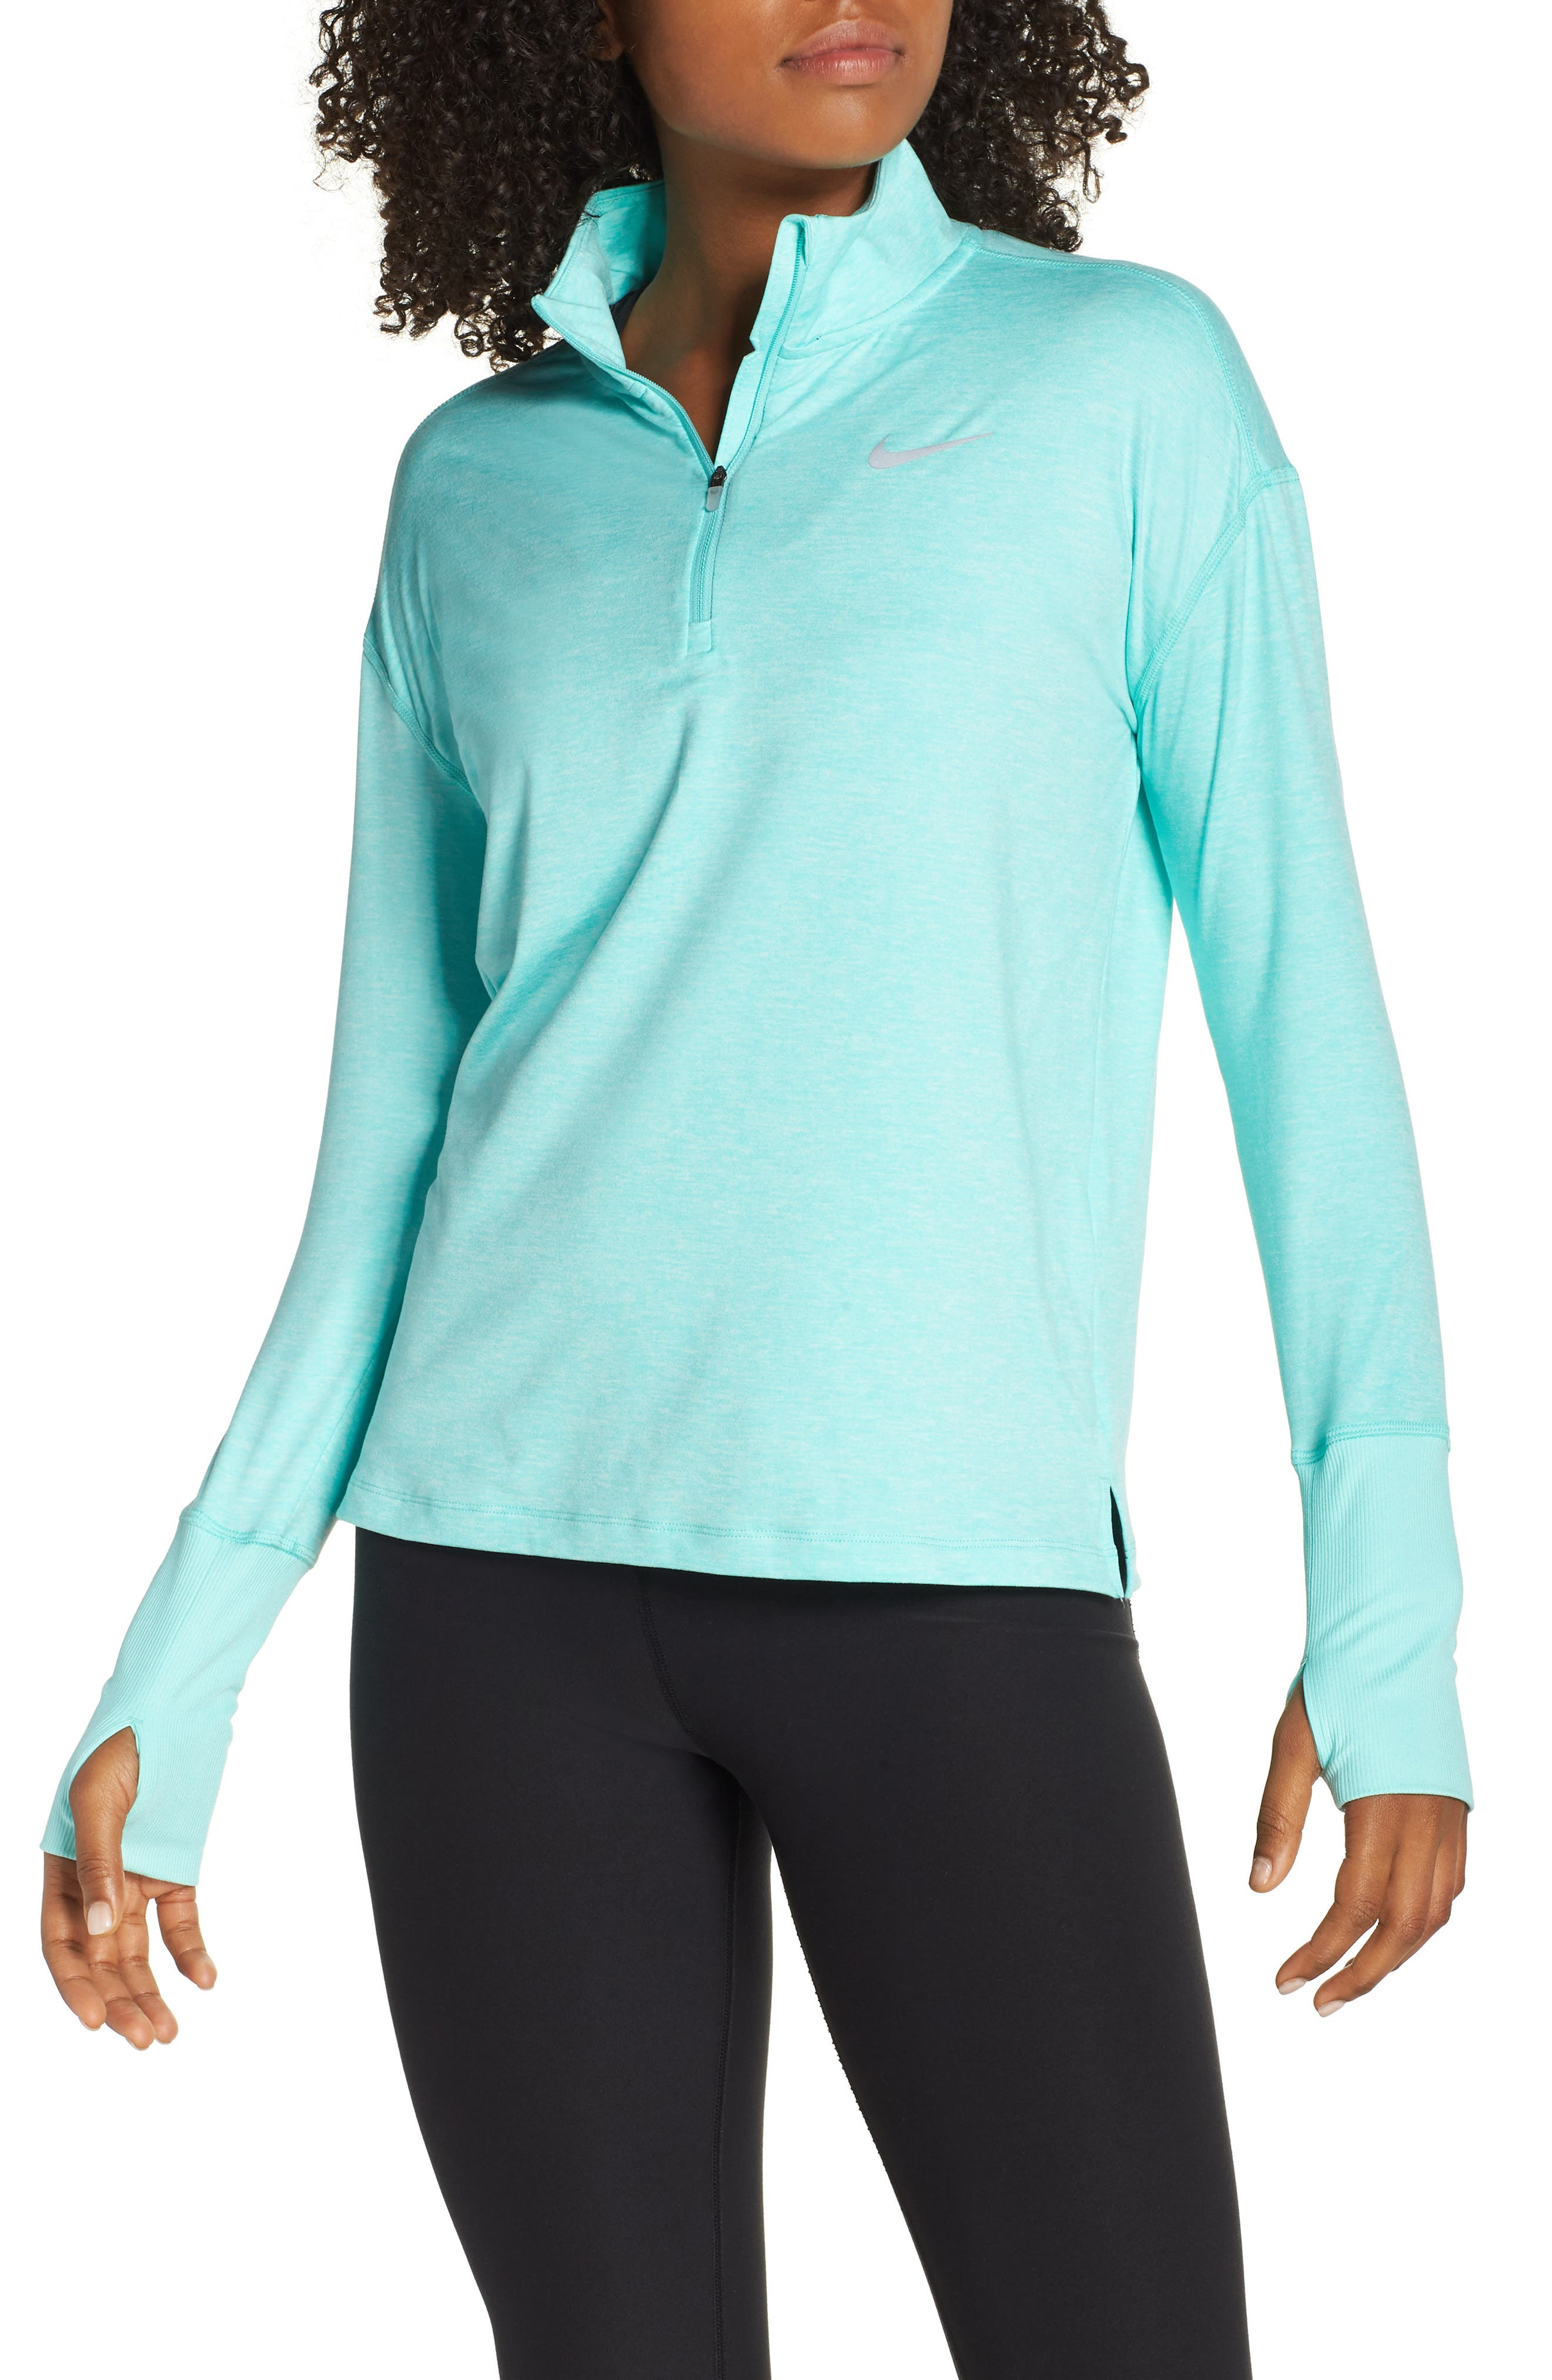 Element Long-Sleeve Running Top,                         Main,                         color, TROPICAL TWIST/ TEAL TINT